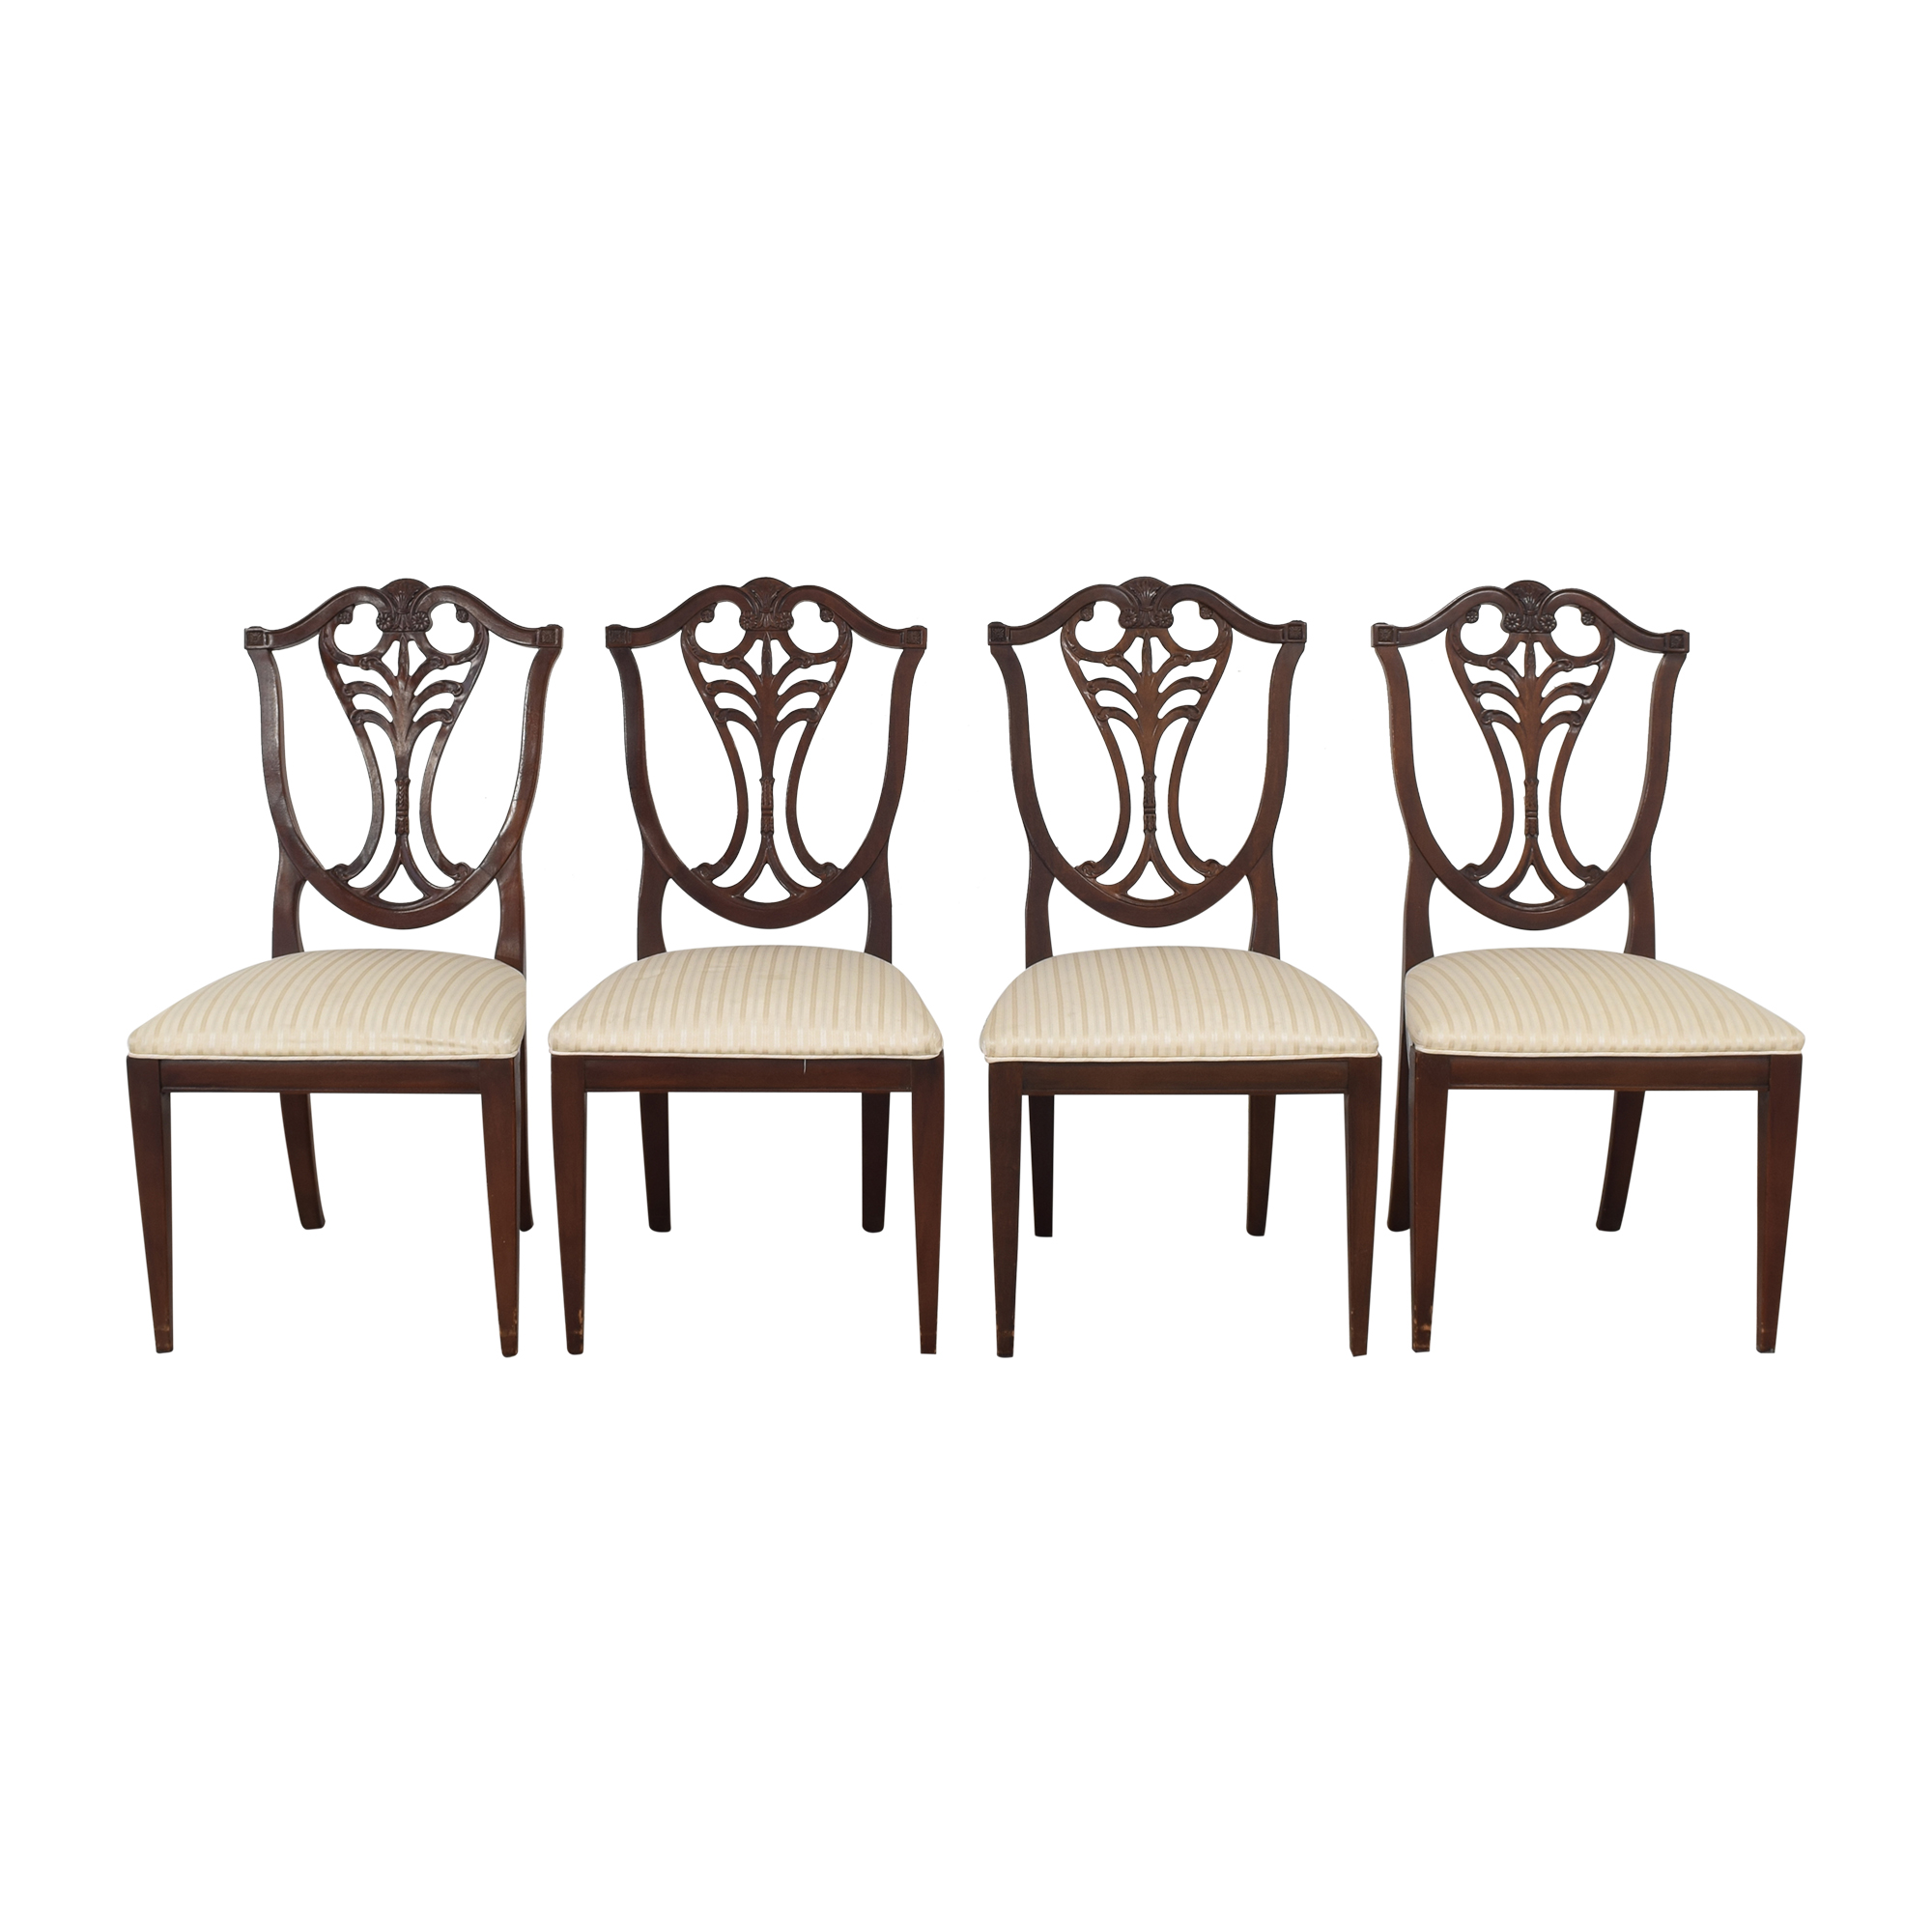 Henredon Furniture Dining Chairs / Chairs